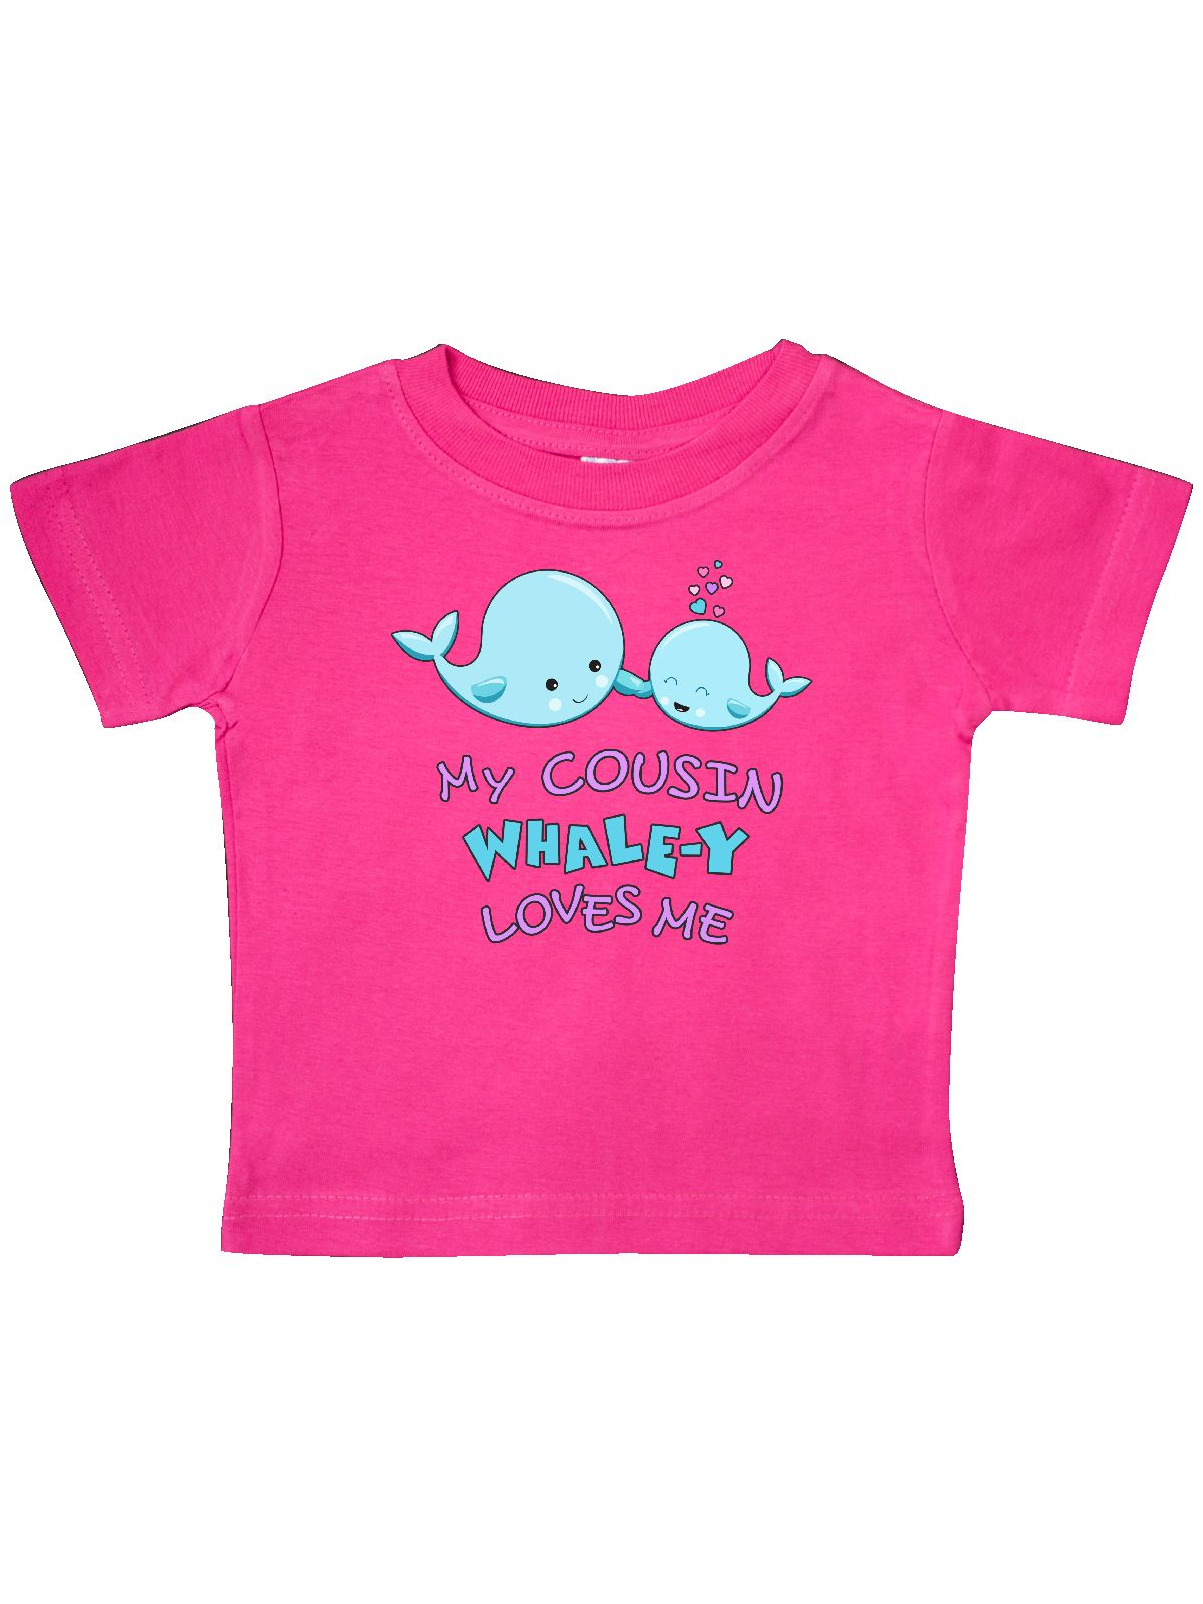 My Cousin Whale-y Loves Me Baby T-Shirt